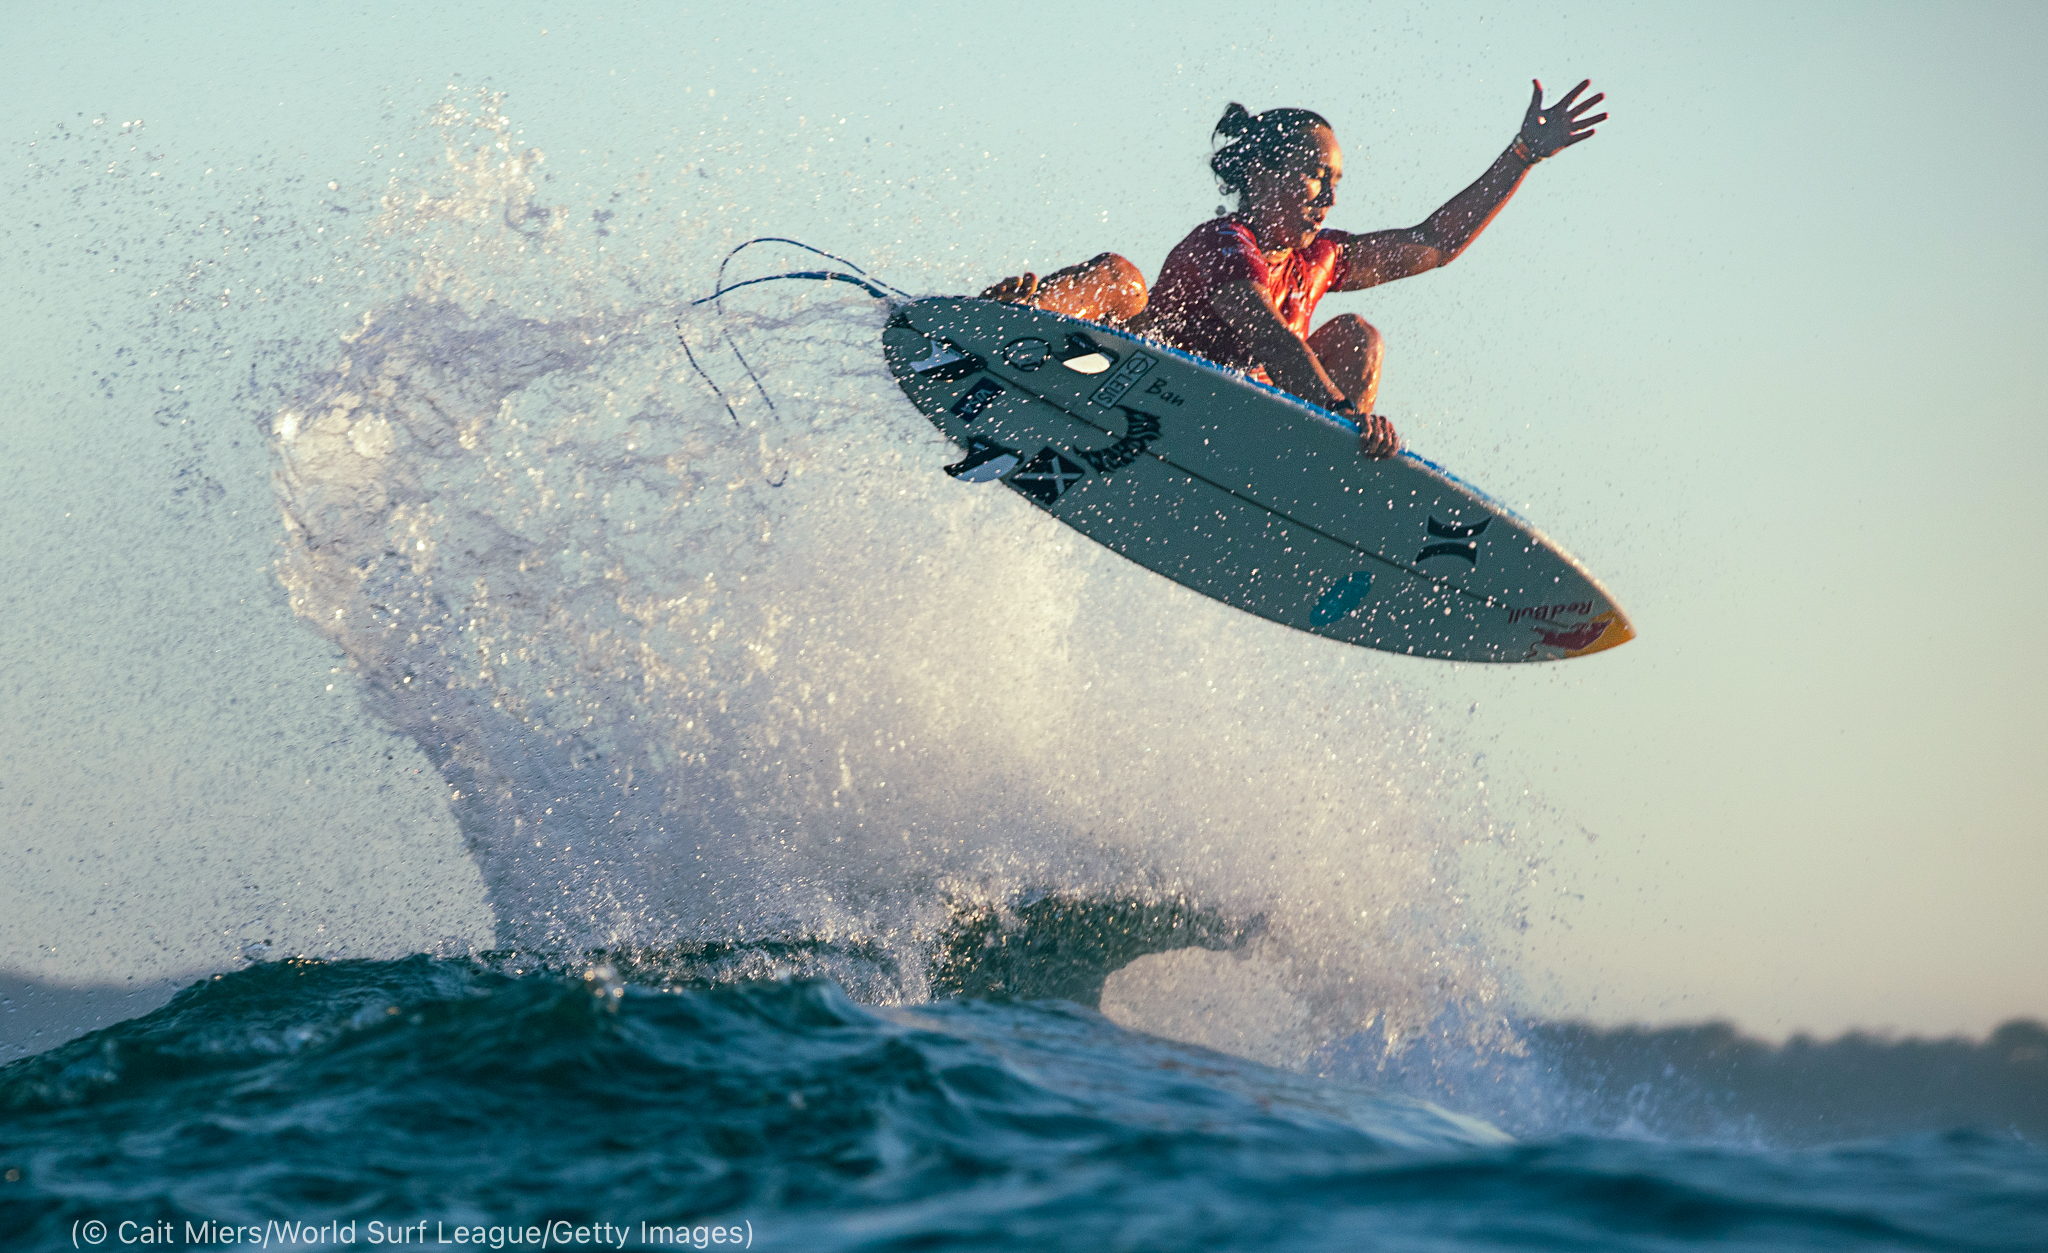 Woman flying over wave on surfboard (© Cait Miers/World Surf League/Getty Images)